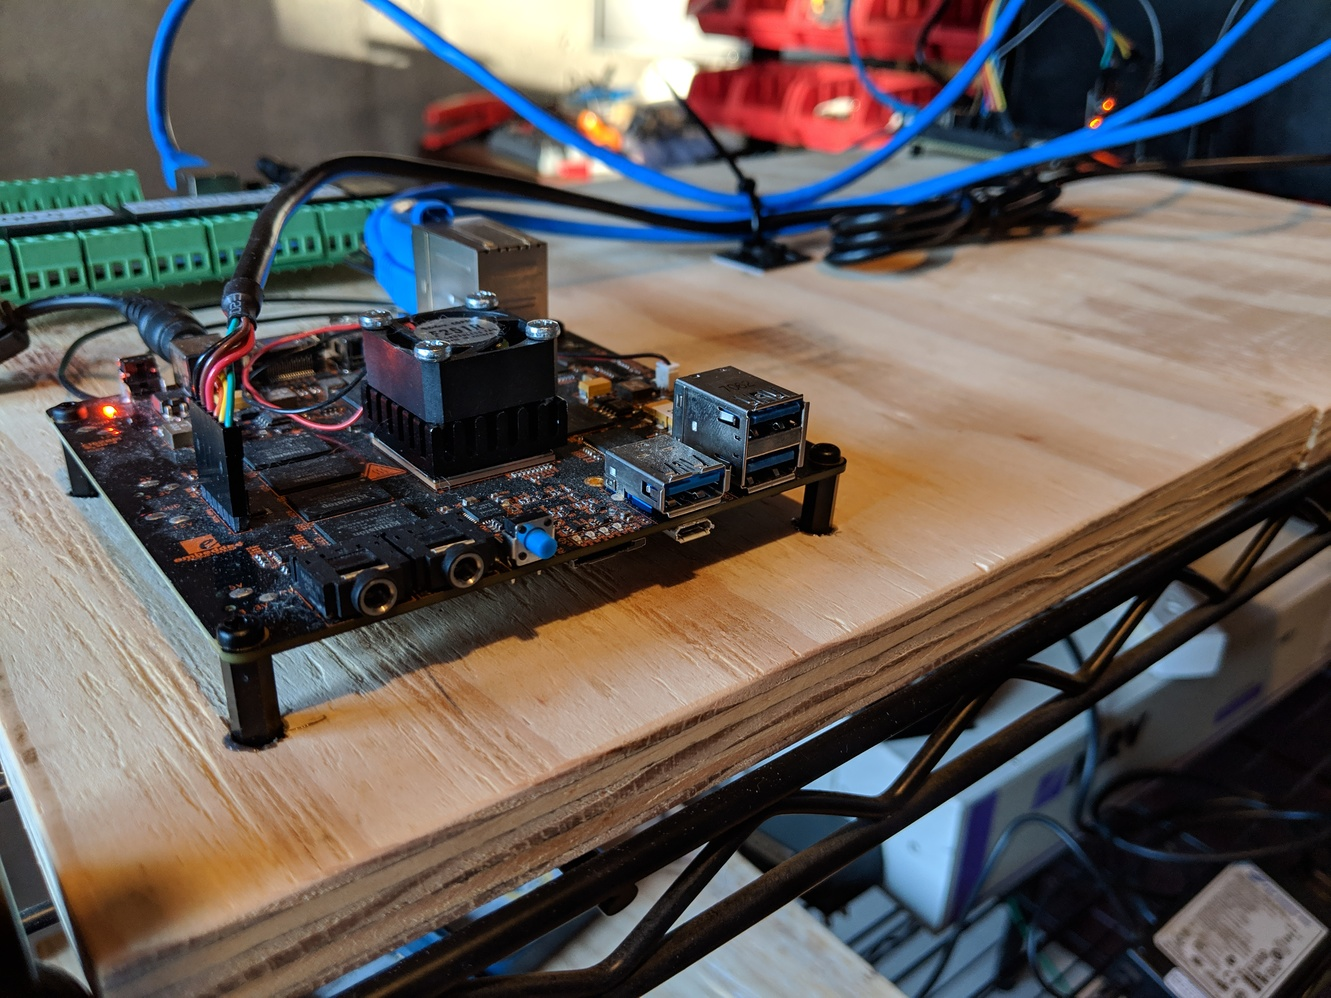 Beaglebone X15 mounted to plywood